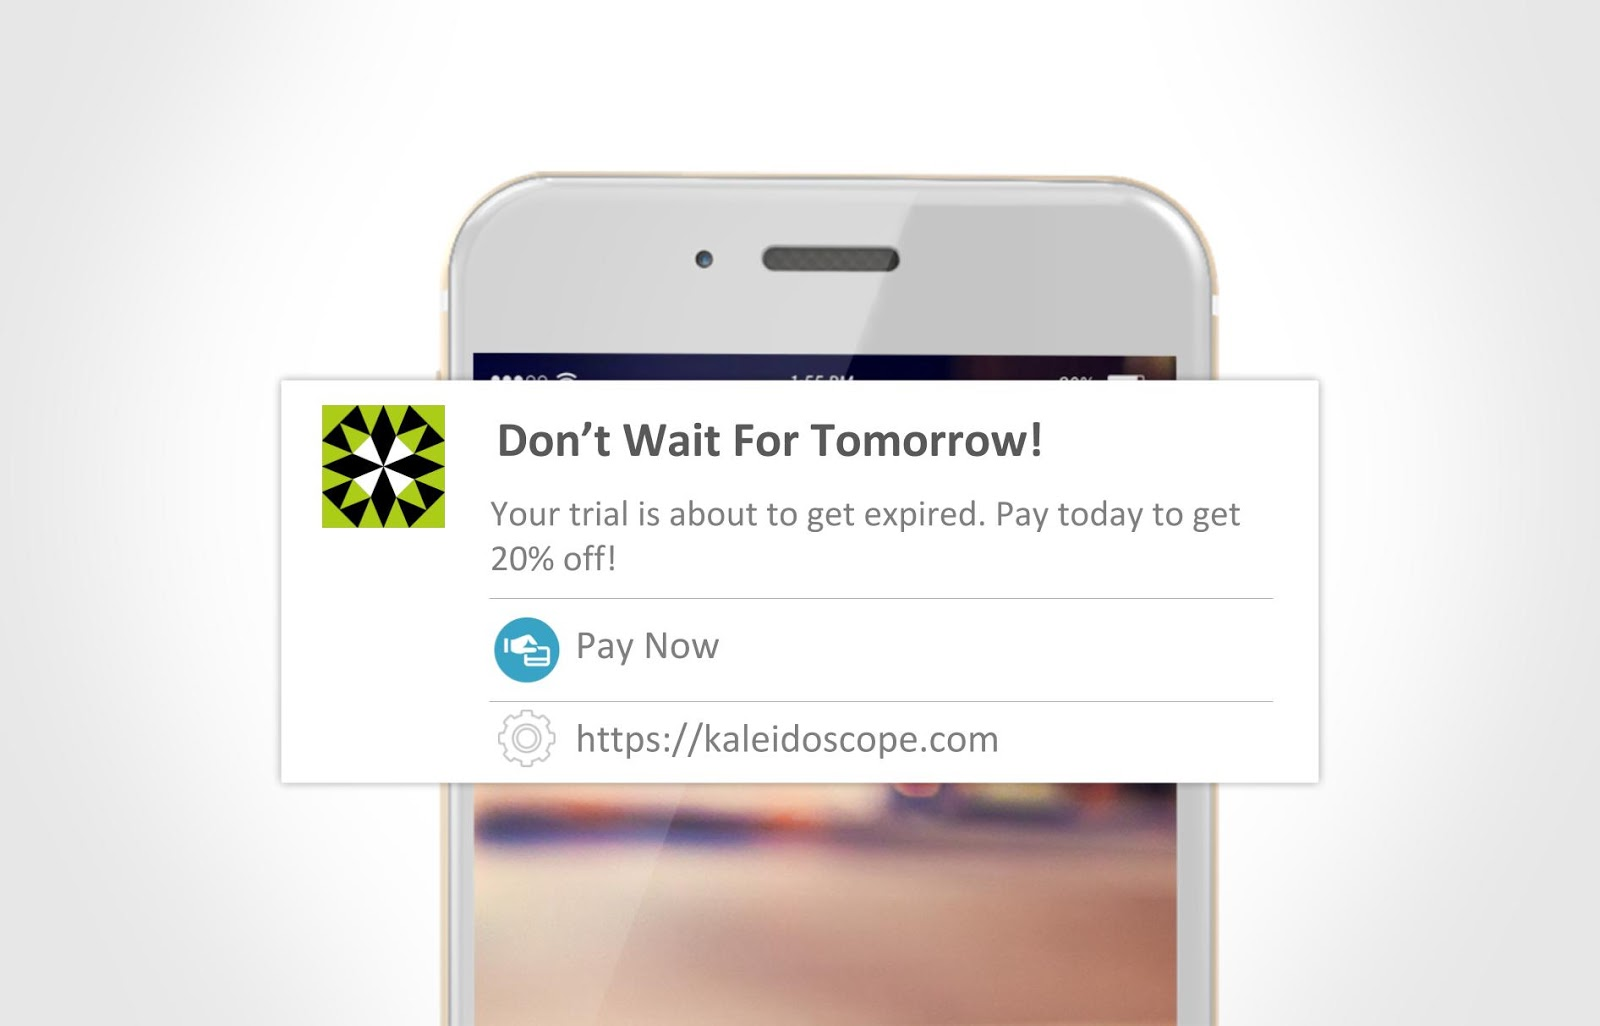 web push notifications help businesses